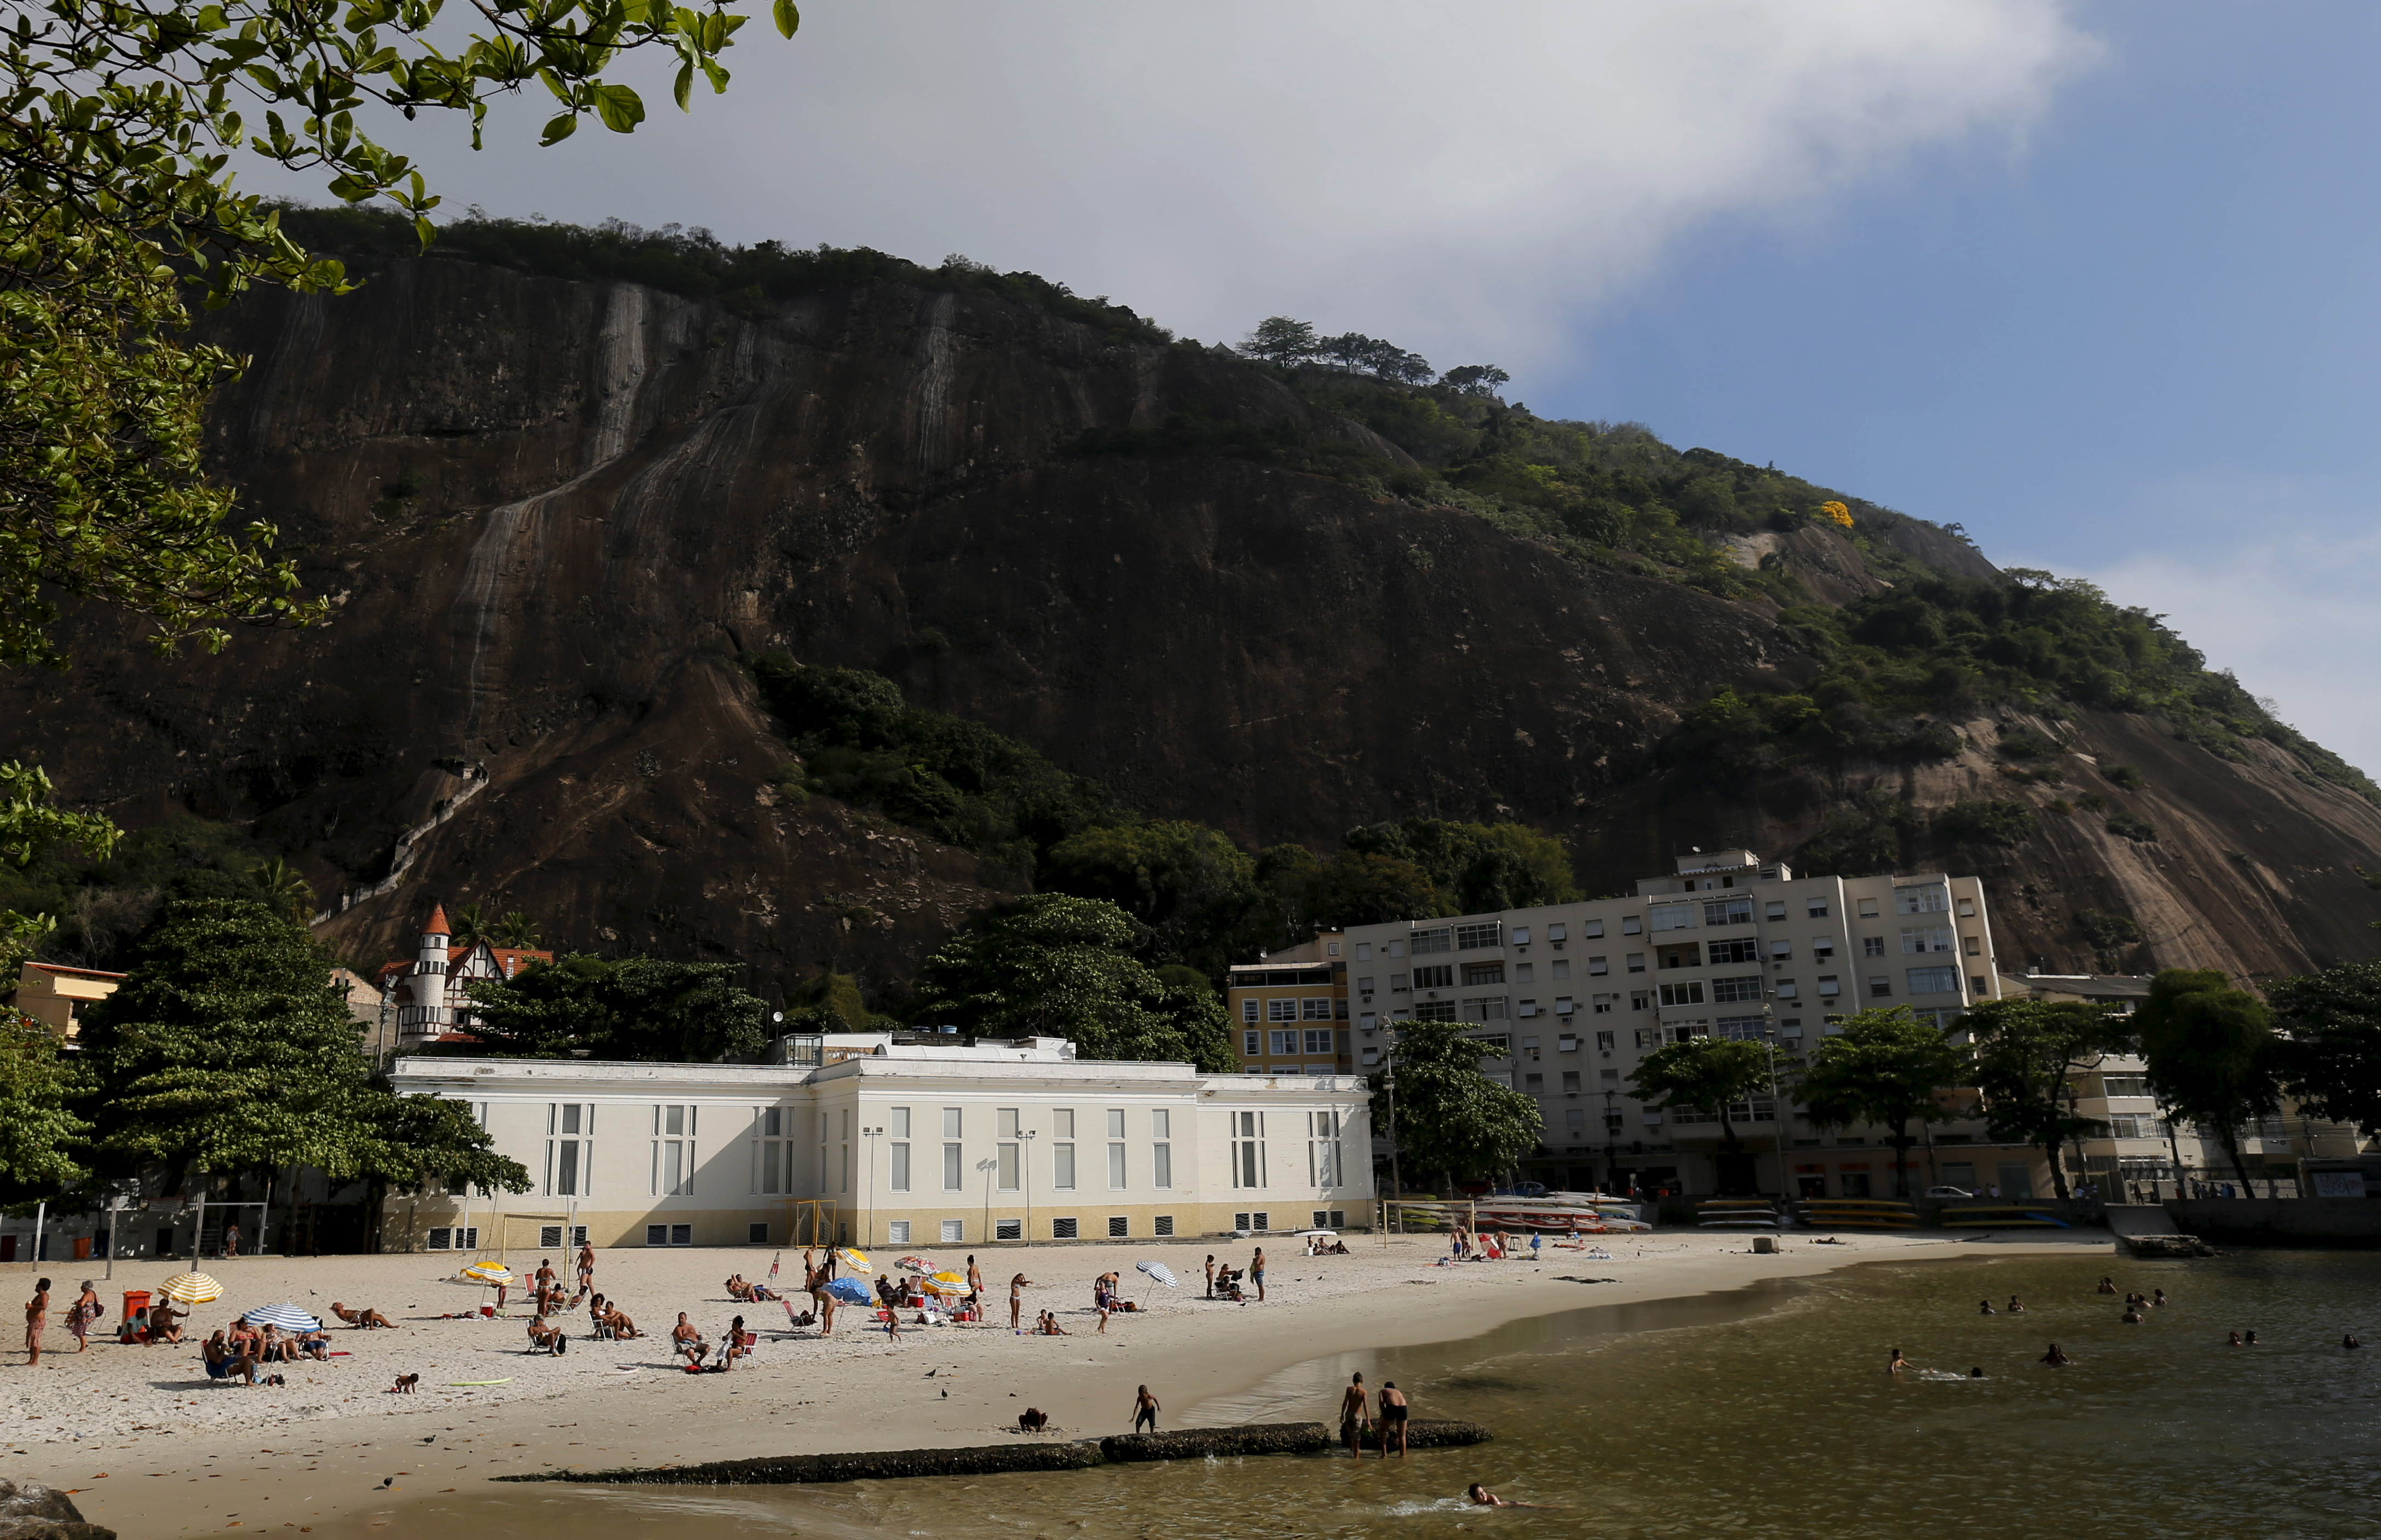 The building where Urca Casino operated until Brazil banned casinos, is pictured at Urca beach in Rio de Janeiro, Brazil, Sept. 22, 2015.